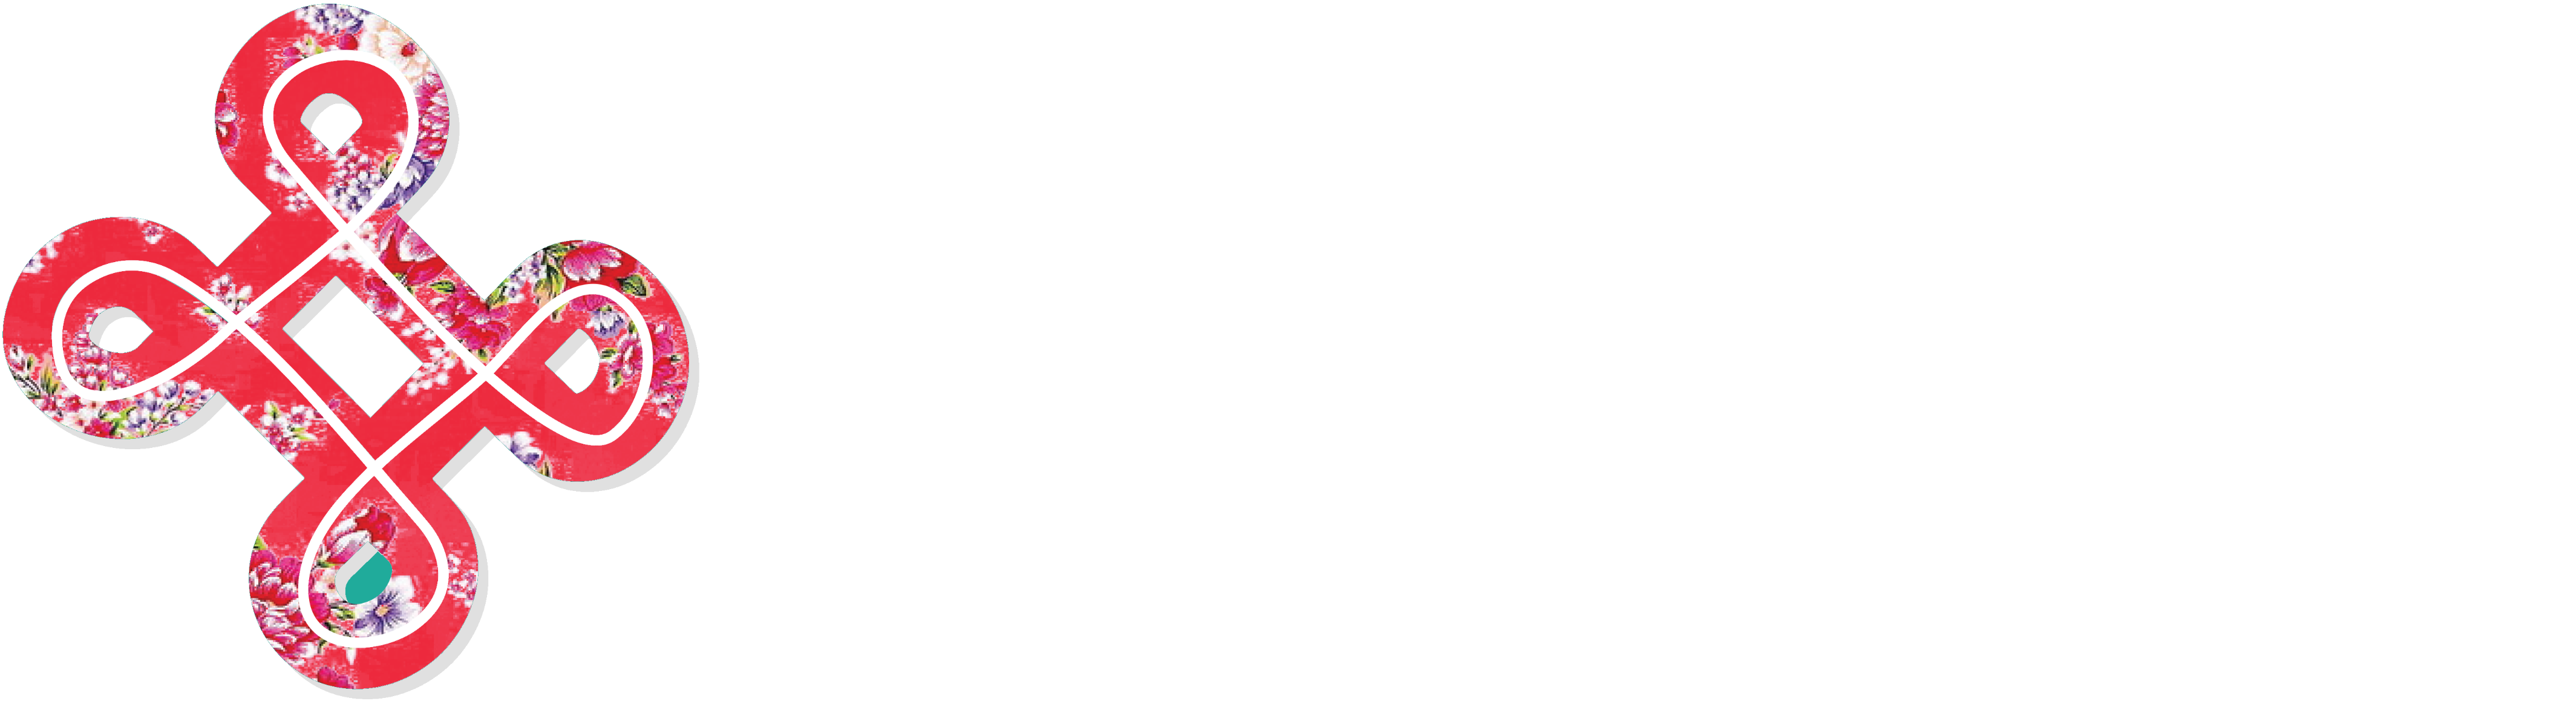 Global Voices Asia Pacific Citizen Media Summit 2019 -